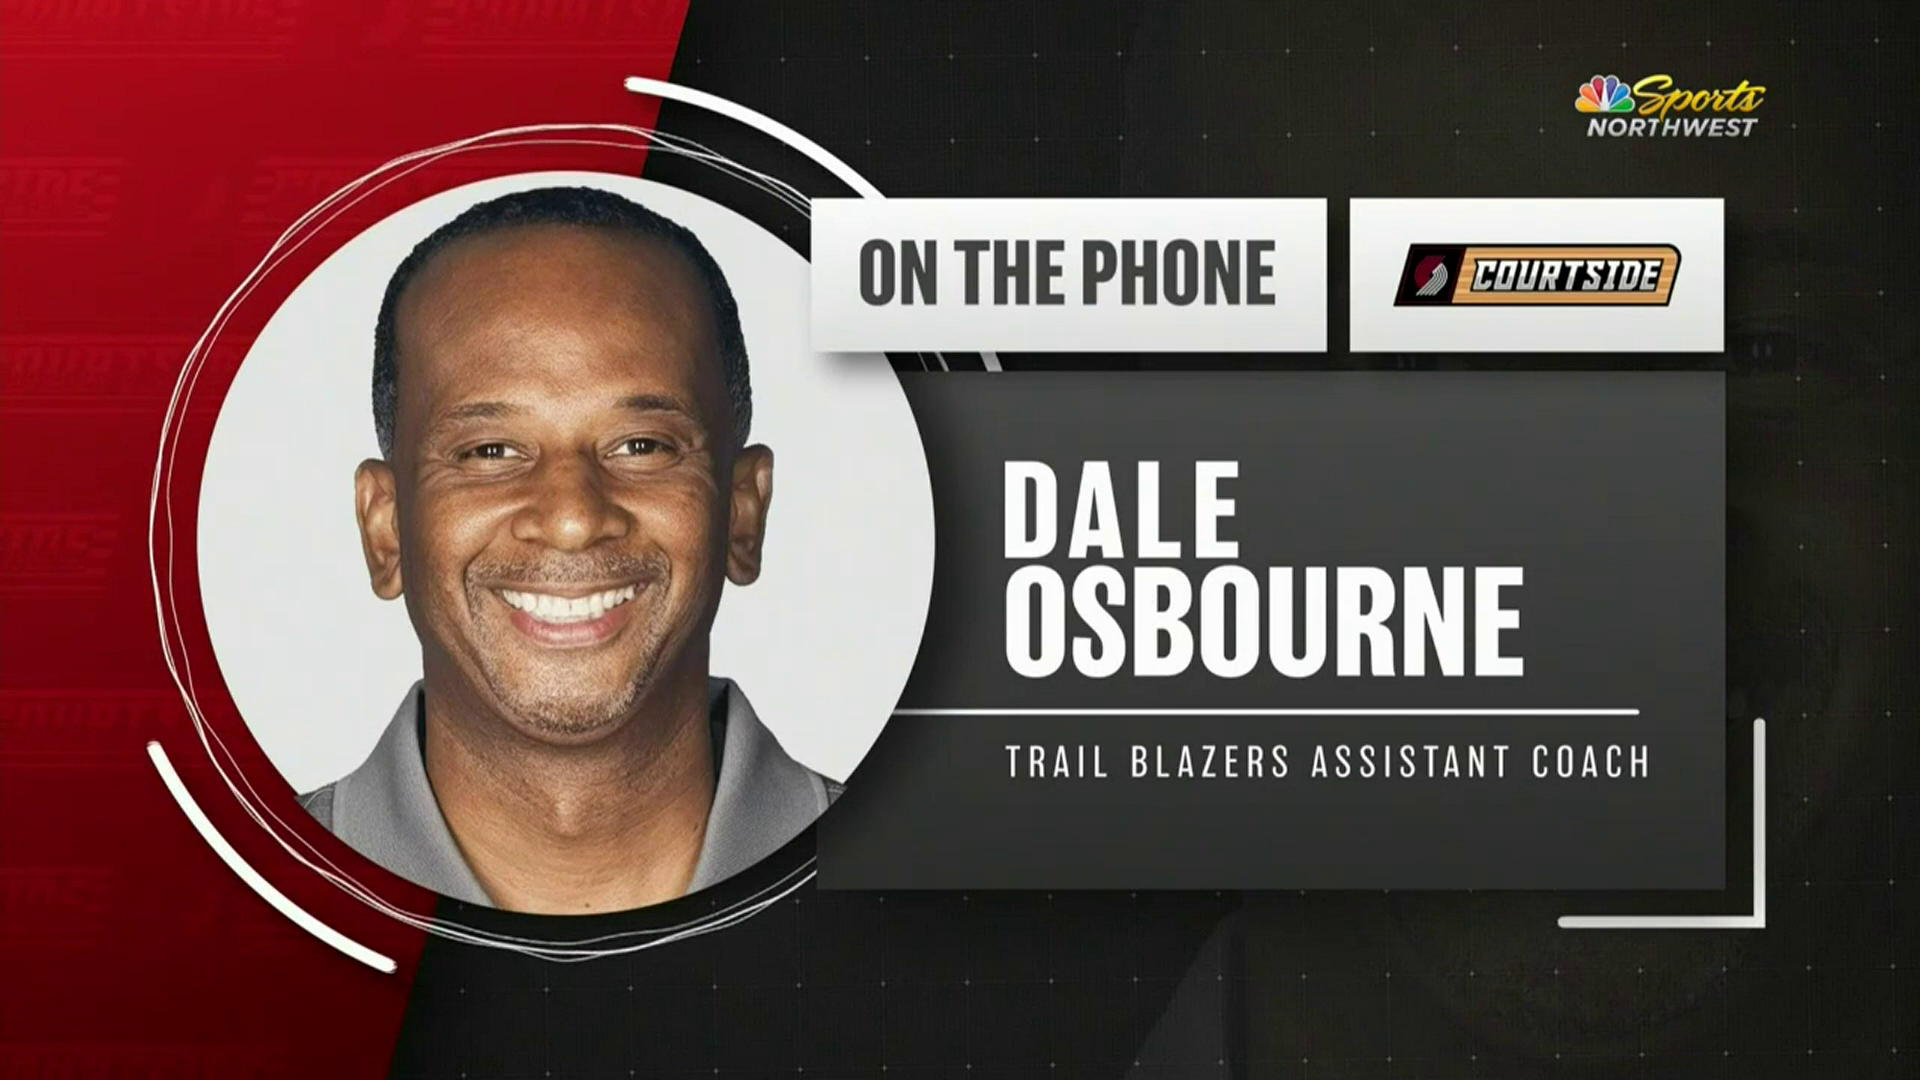 Assistant Coach Dale Osbourne Joins Trail Blazers Courtside